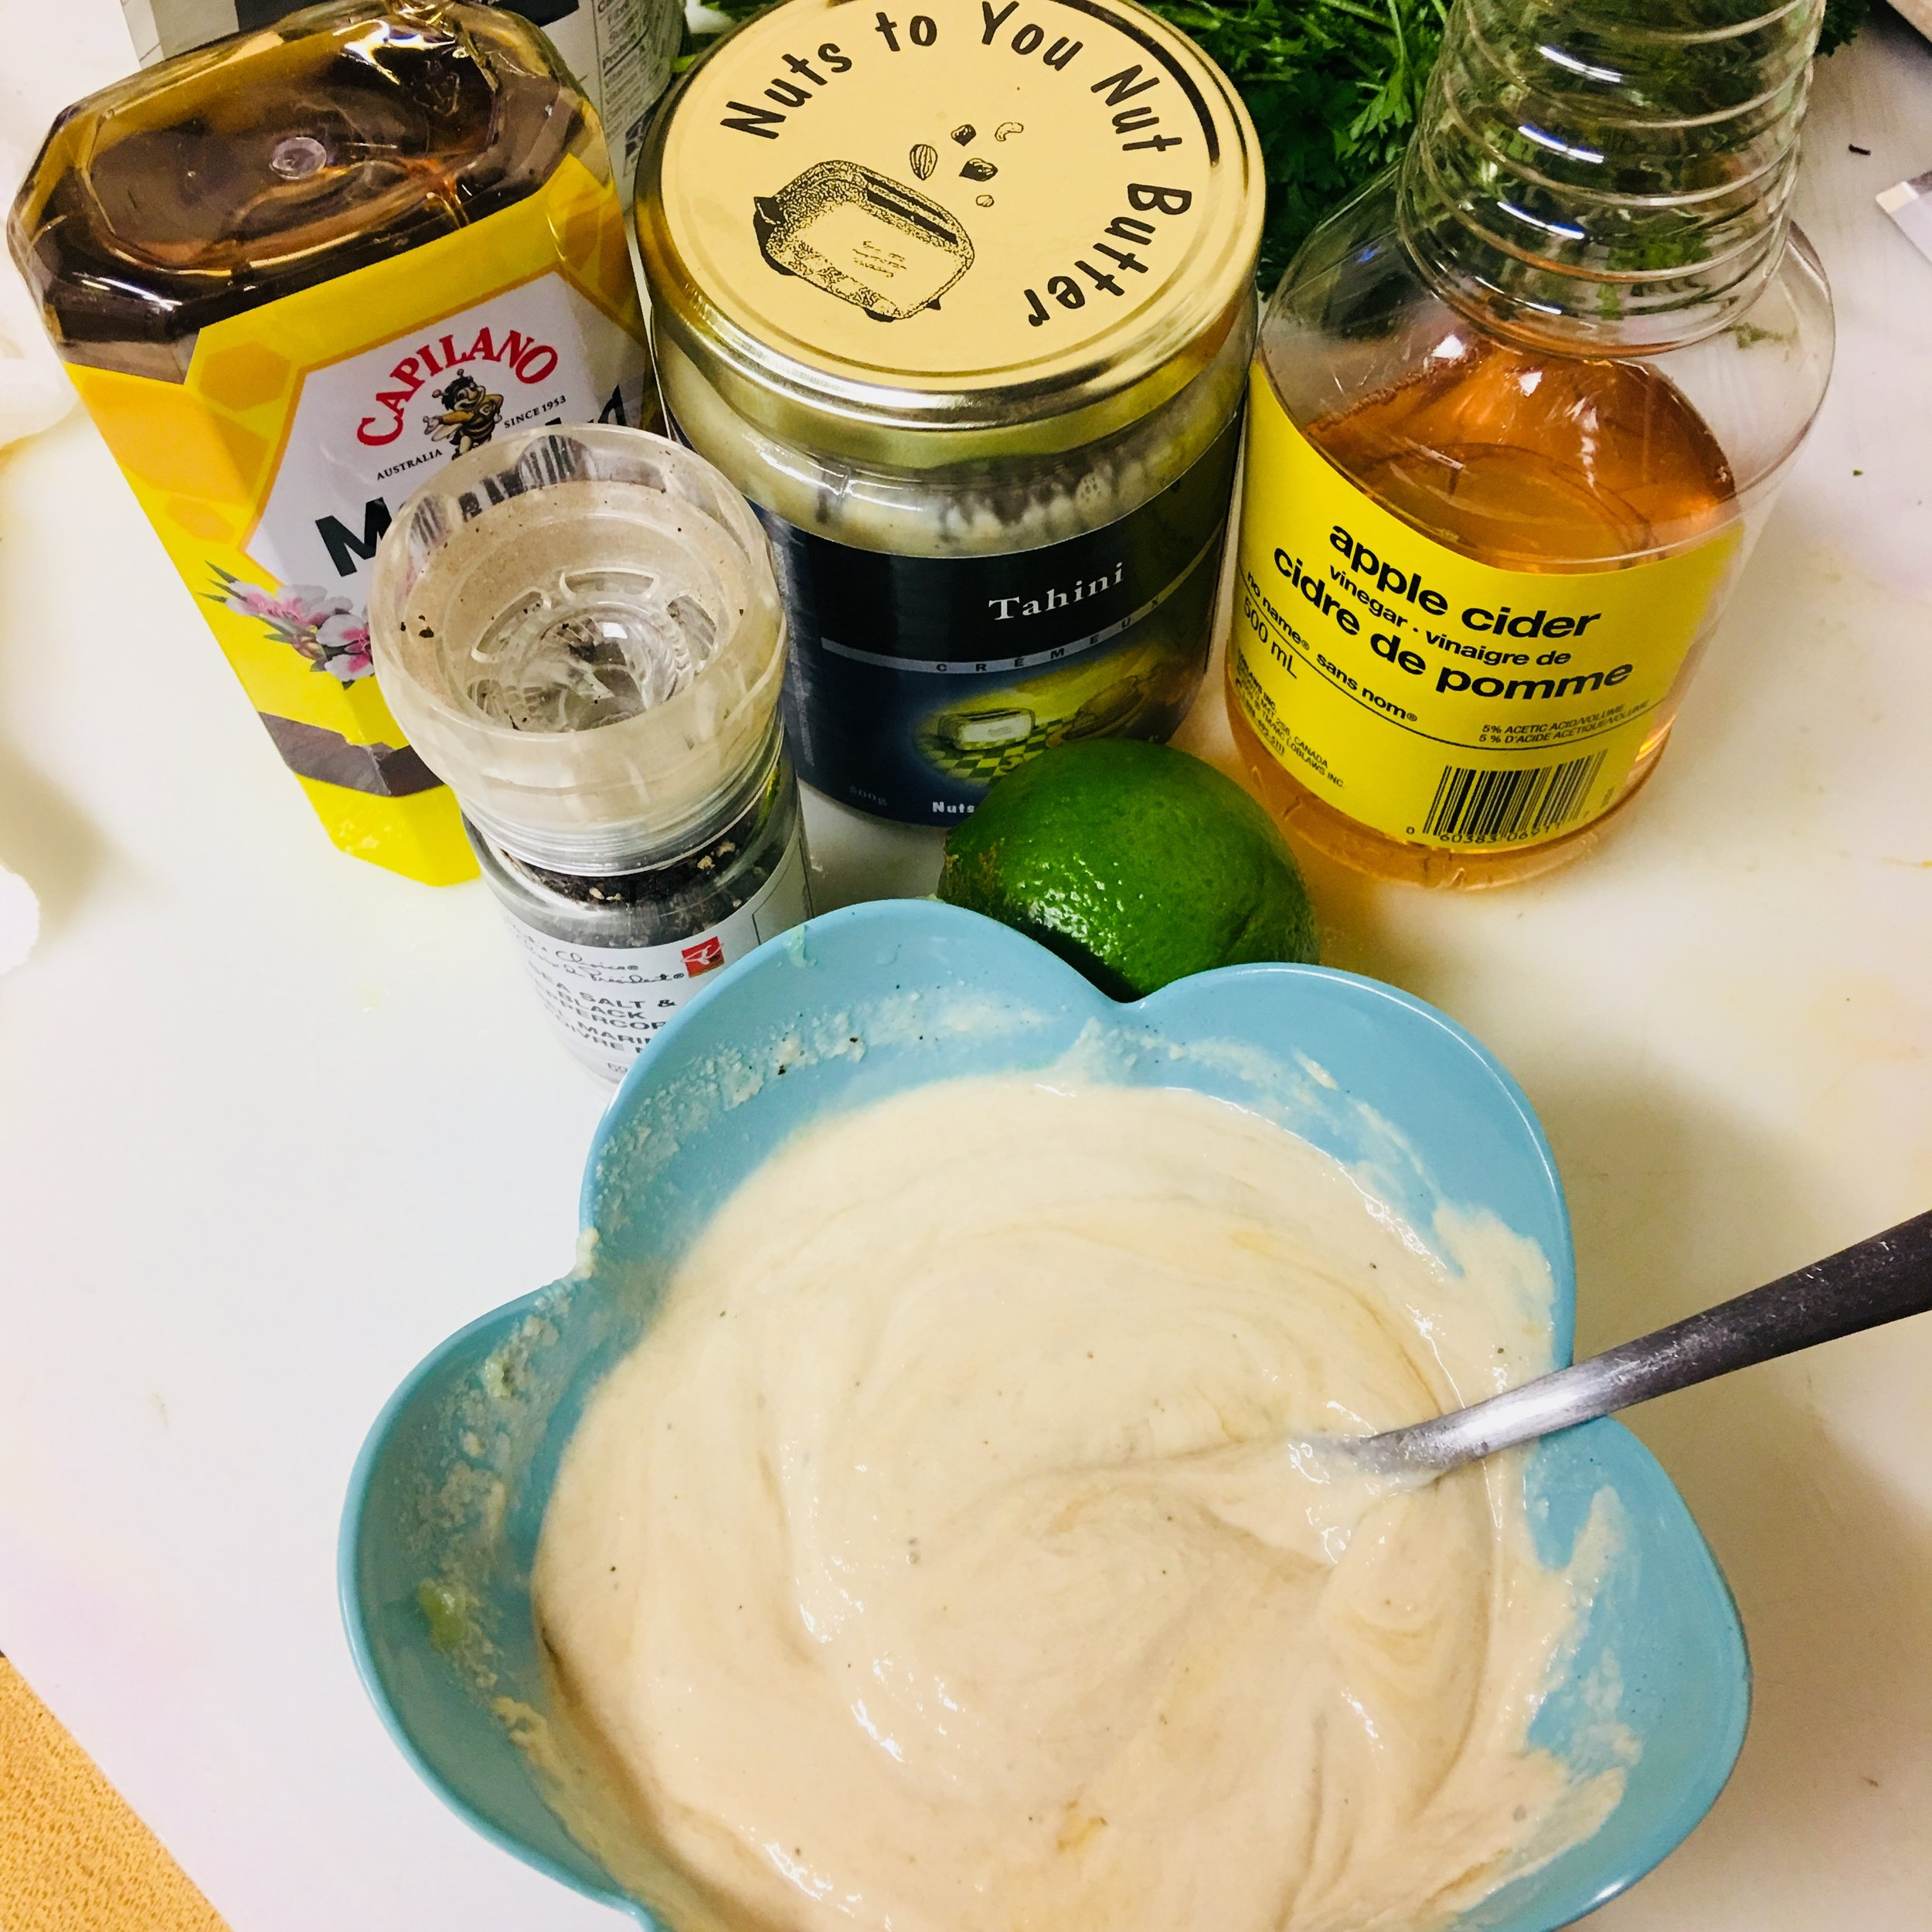 Did you know? - Tahini is a paste made from finely ground sesame seeds!